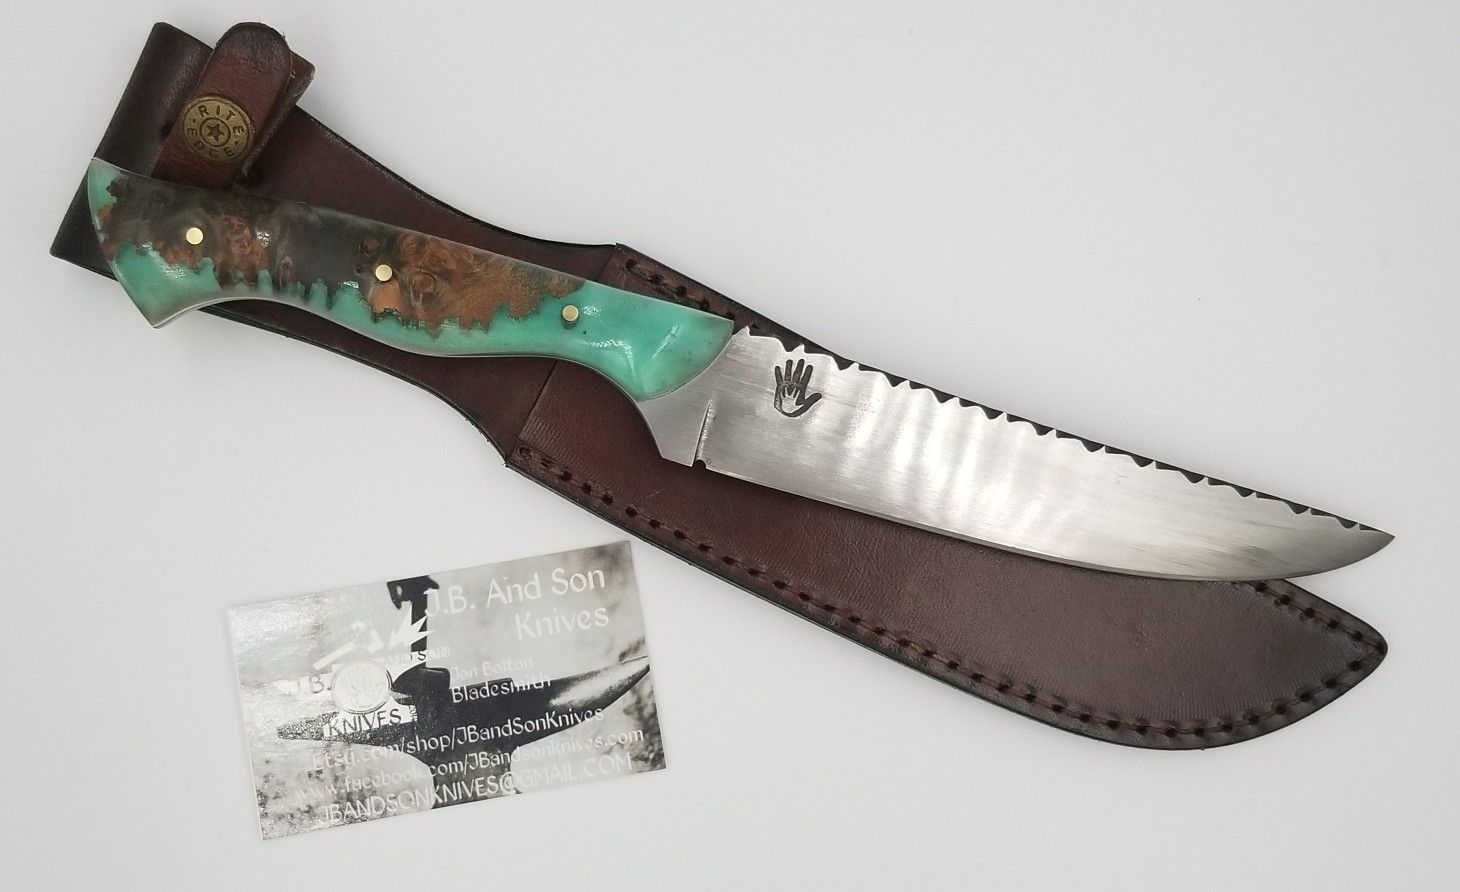 J B And Son Knives Hand Forged 1095 High Carbon Steel 11 Overall 6 X 1 1 8 Blade 5 32 Briar Filed Spine Live E Leather Sheath High Carbon Steel Knife